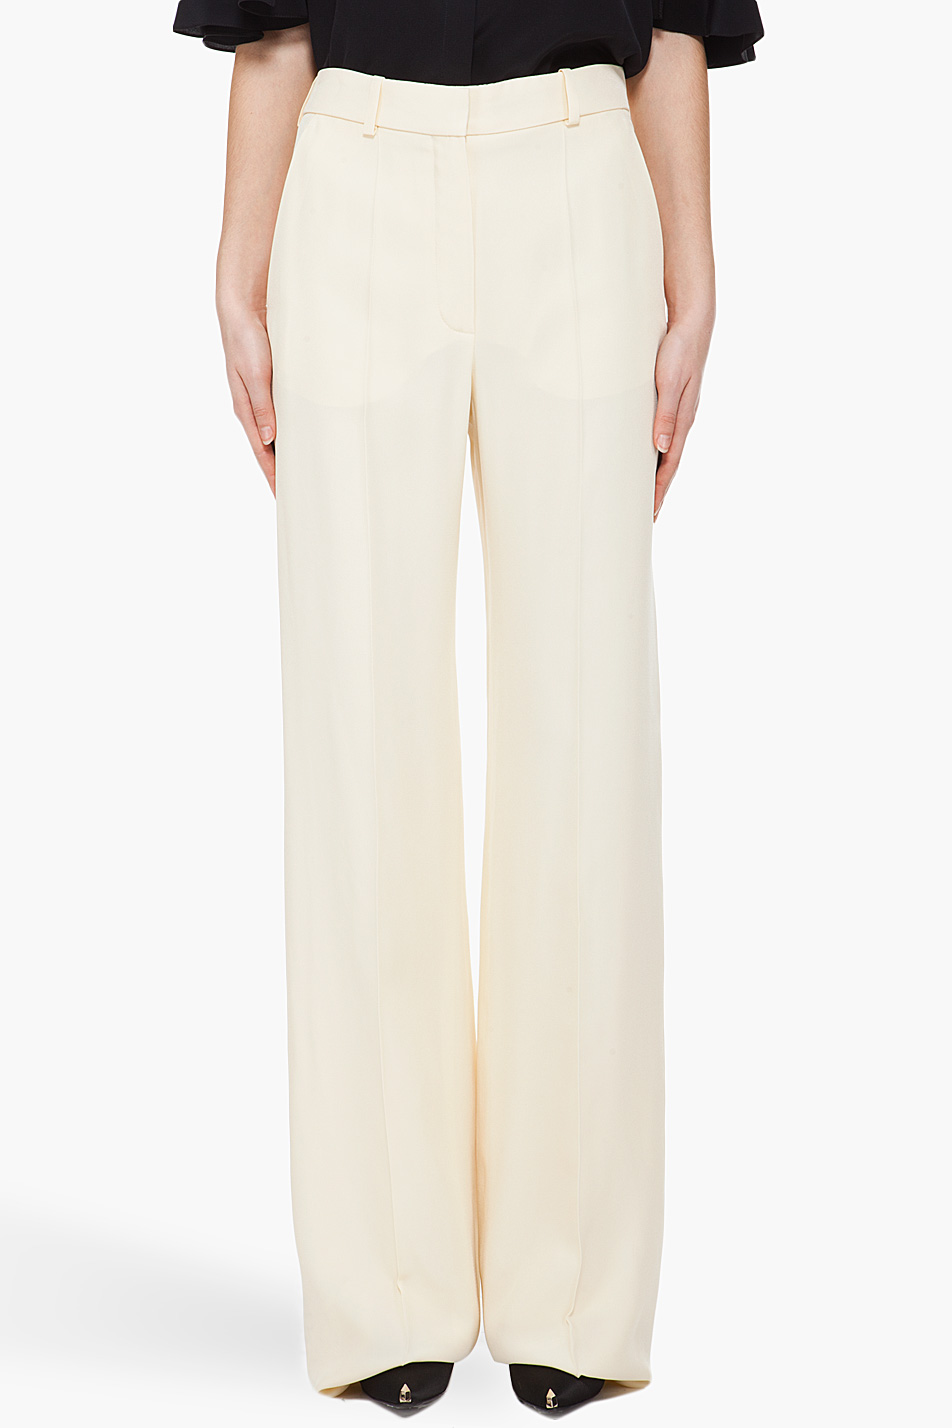 Chloé Wide Leg Crepe Pants in Natural | Lyst